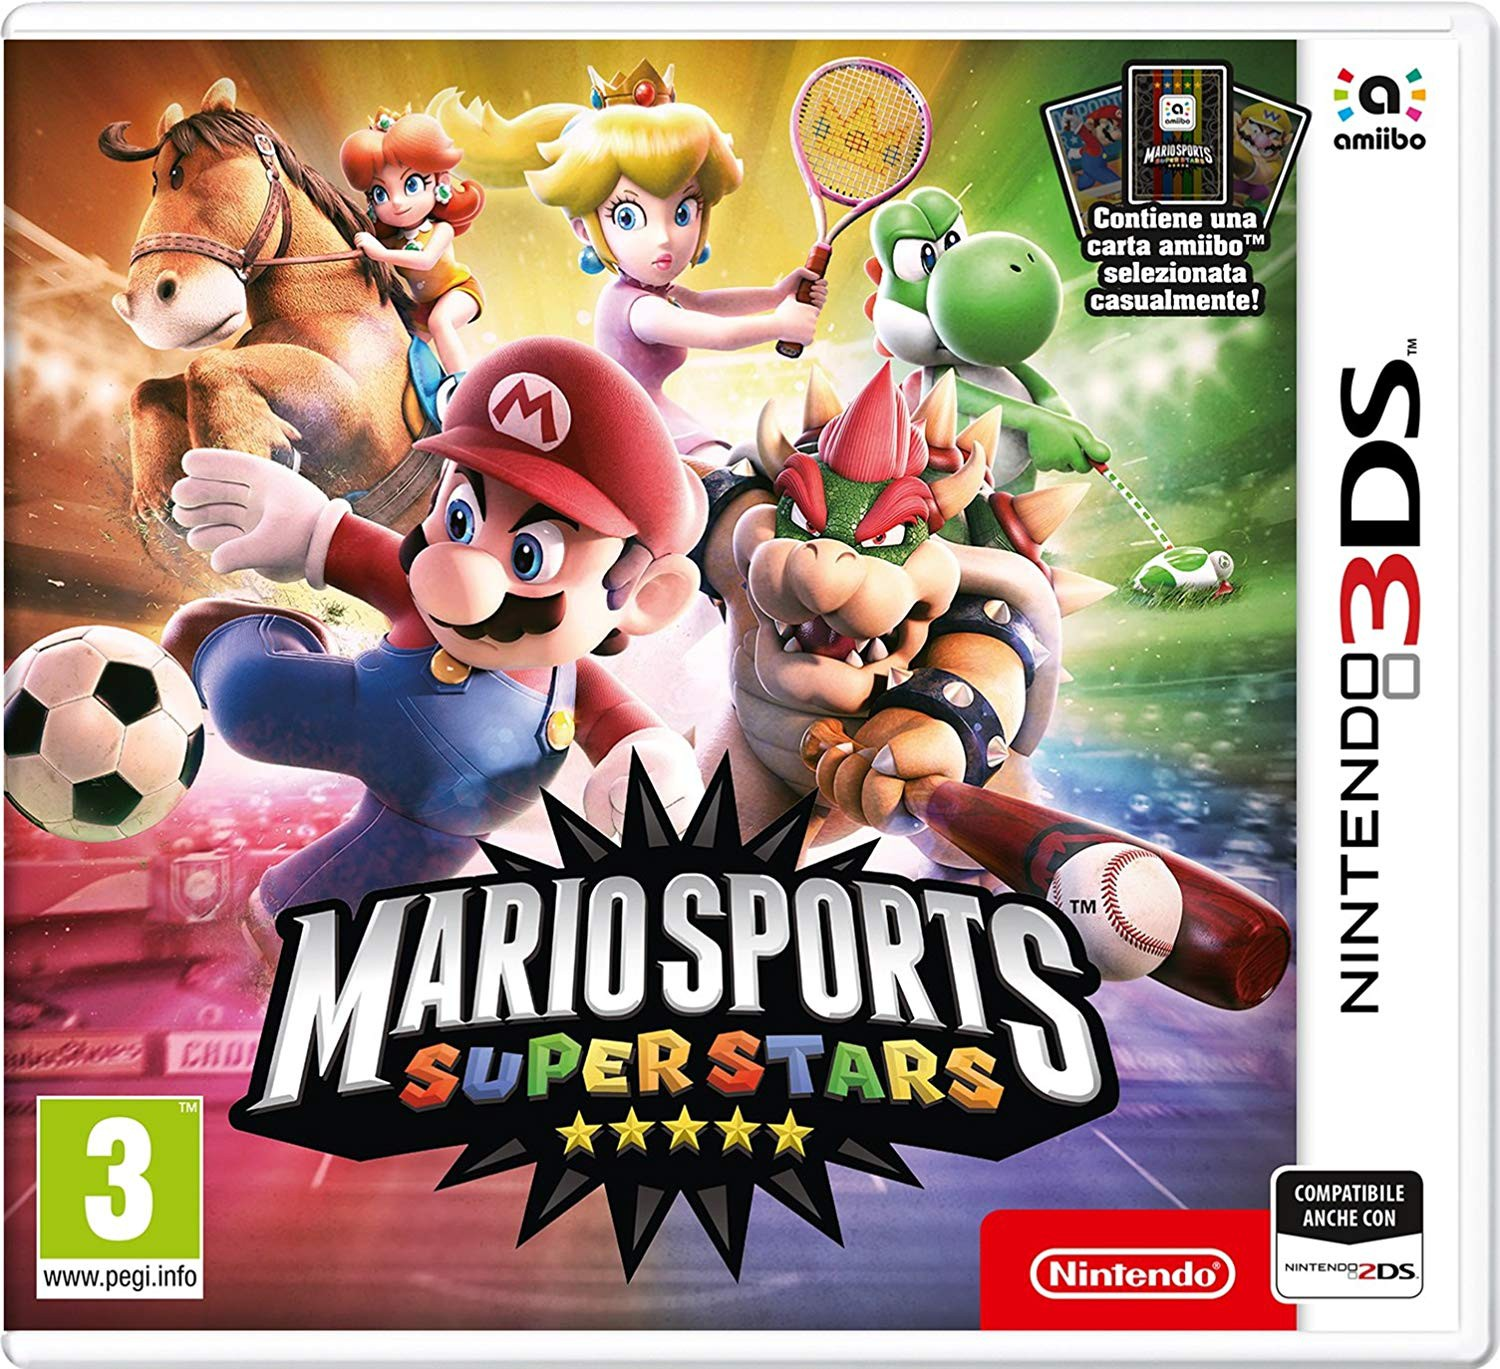 Mario Sports: Superstars